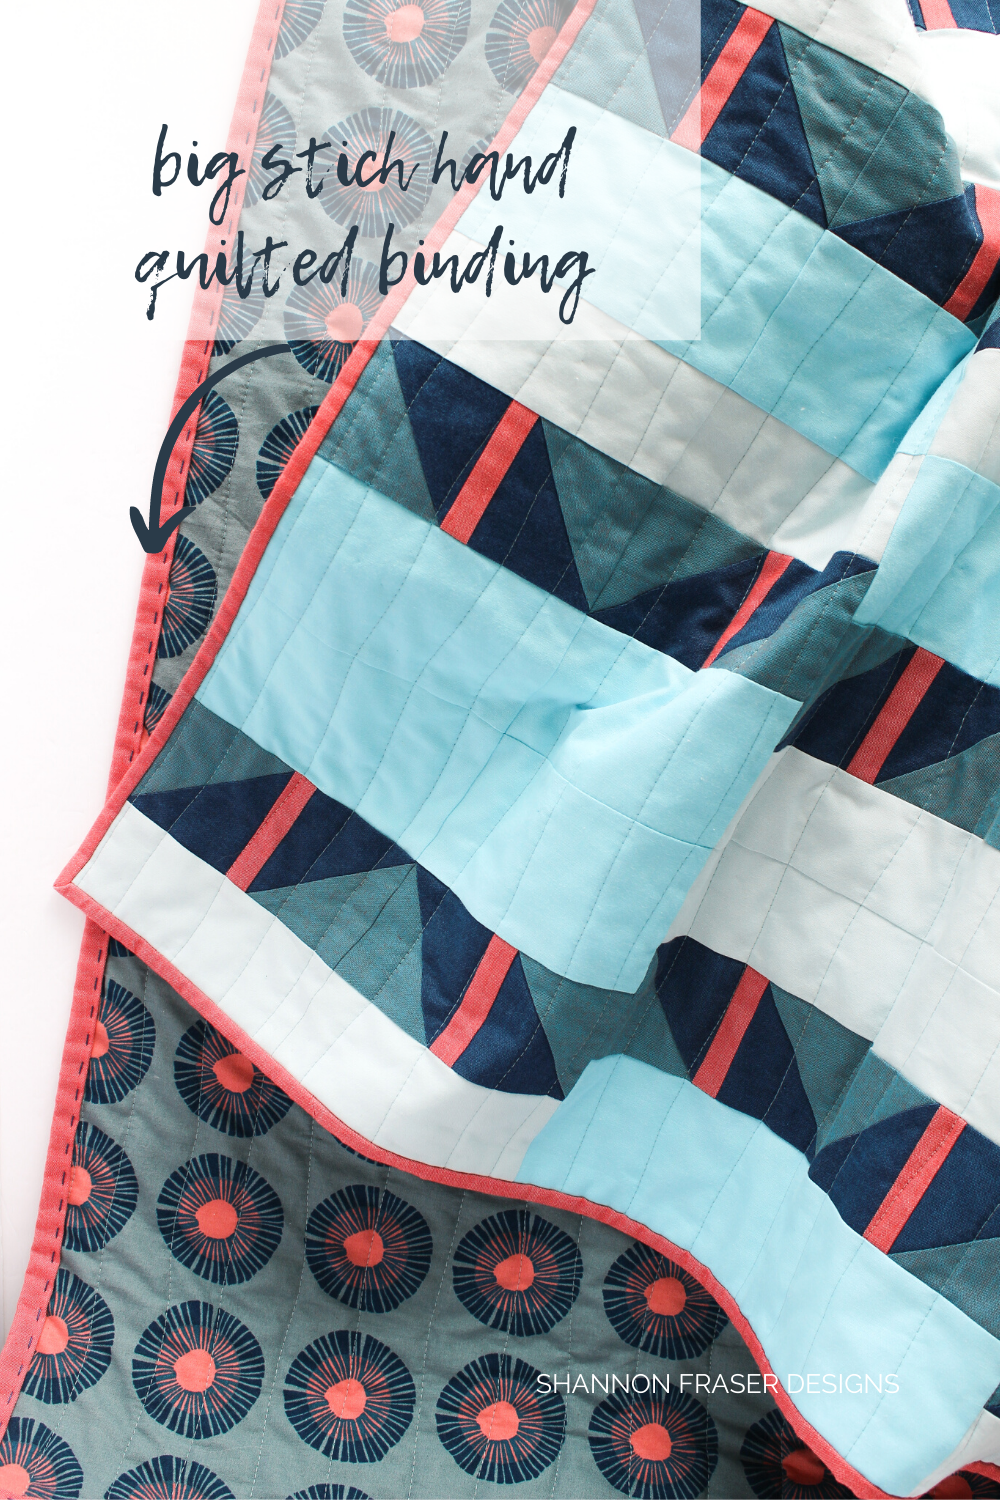 Big stich hand quilted binding on the Shattered Star quilt the blue and coral Artisan Cotton one! So fun to add these quilty details and it's super fast too! #bigstitchhandbinding